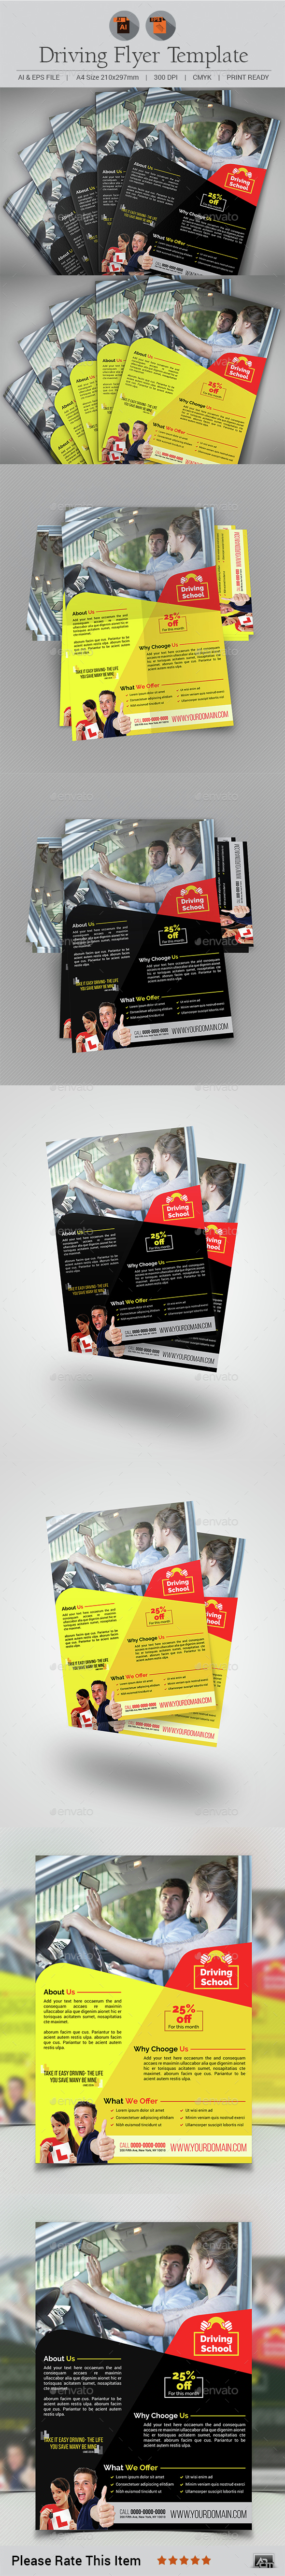 Driving Training Flyer template - Flyers Print Templates